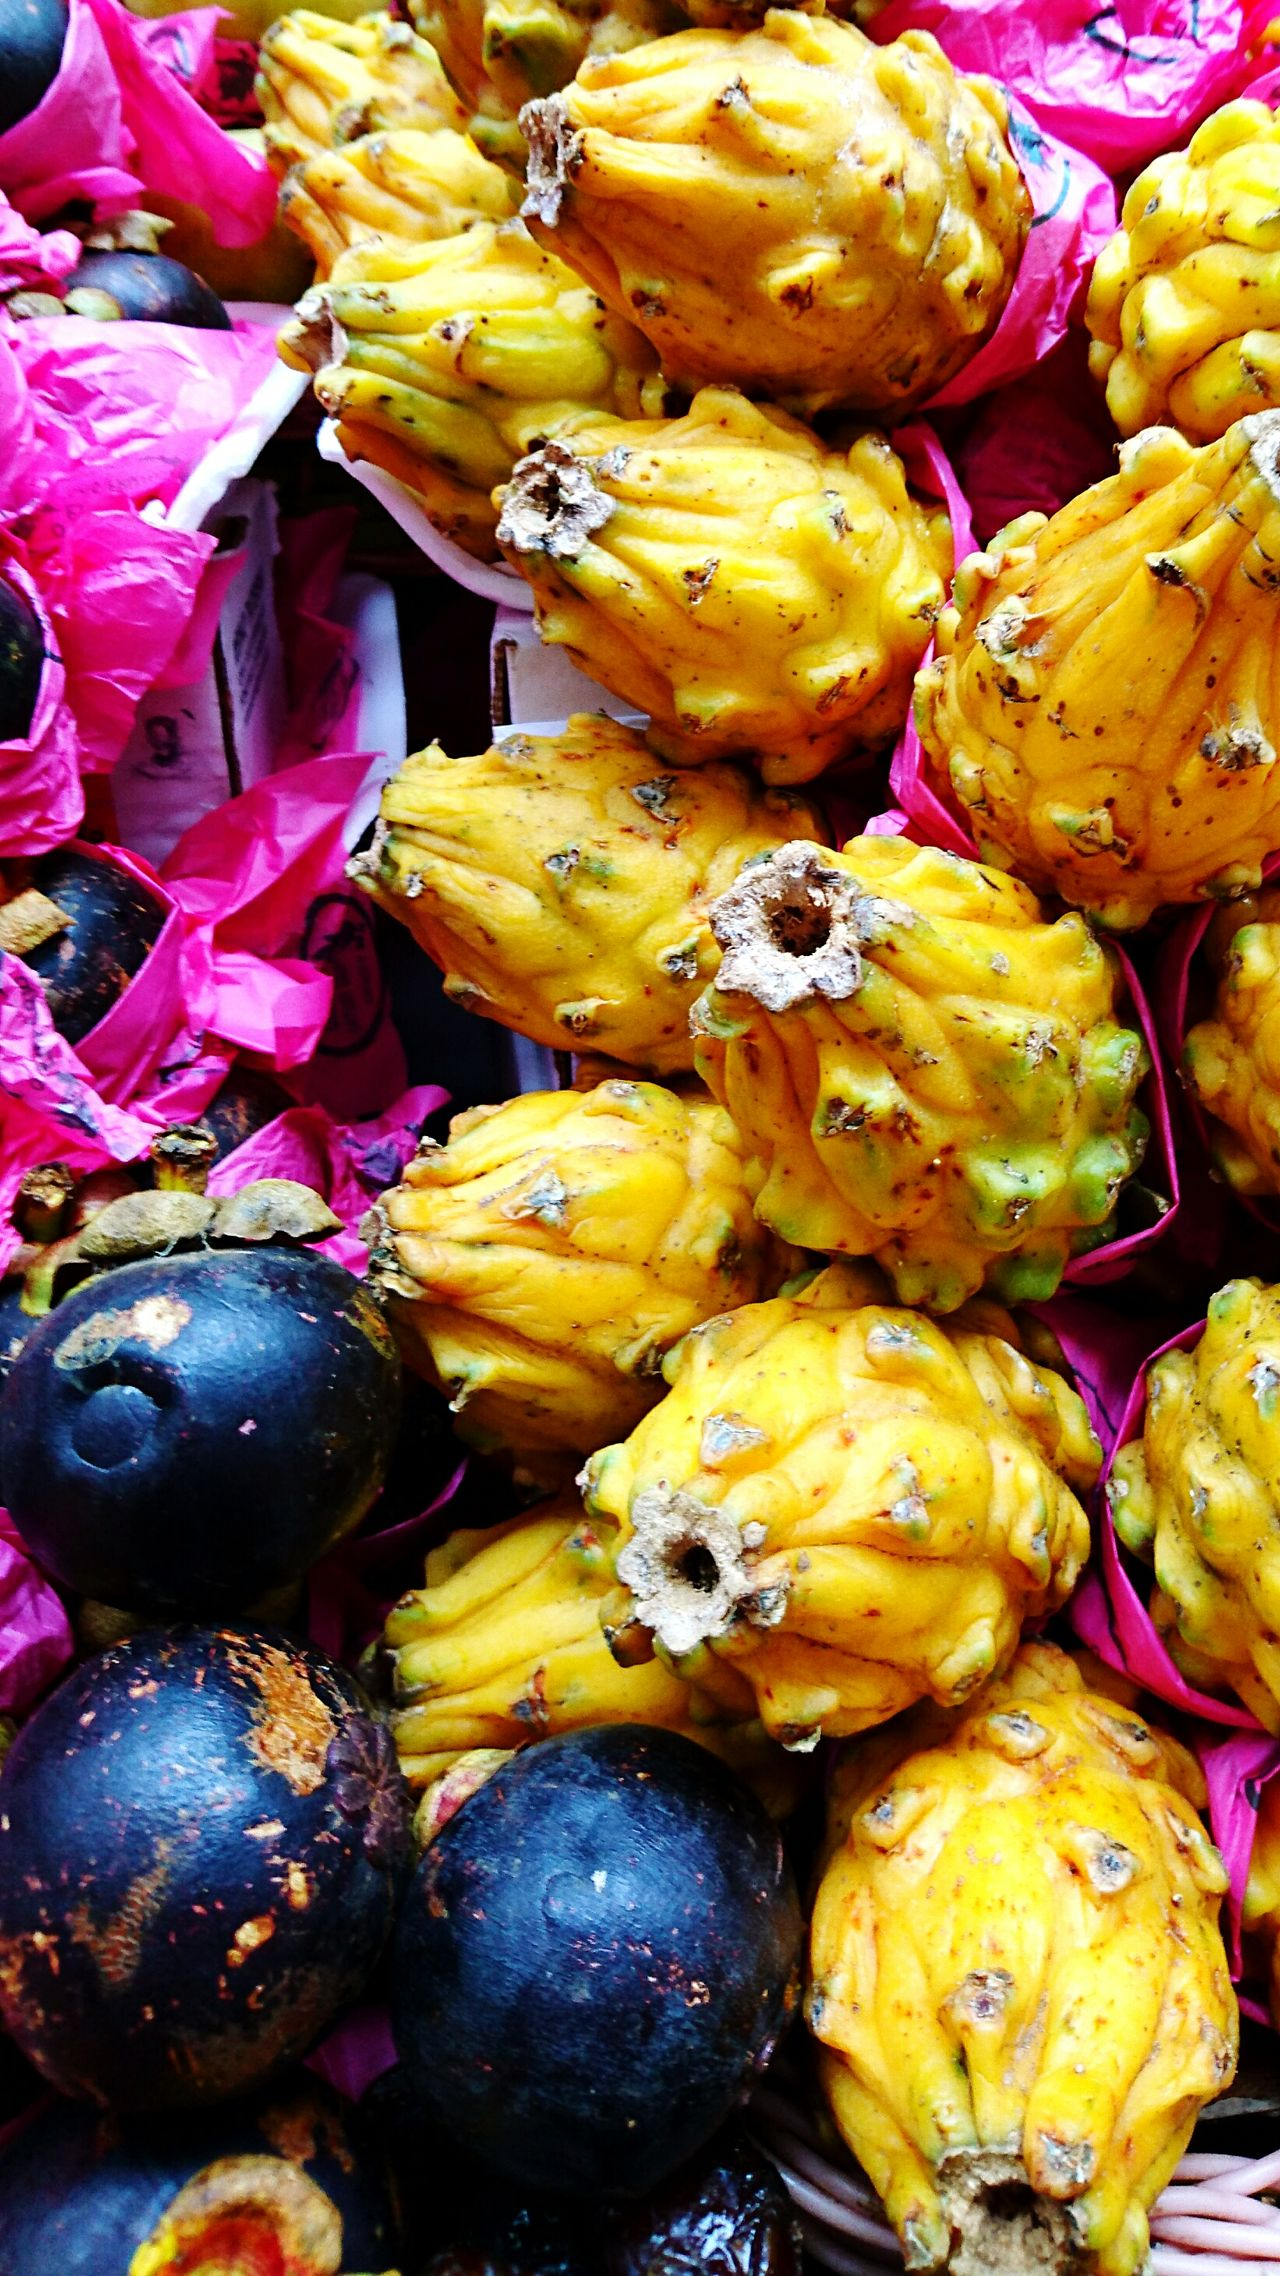 Exotic fruits: Mangostin (the black one) and Yellow Pitaya. Food Food And Drink Variation Freshness Multi Colored Large Group Of Objects Backgrounds Ready-to-eat Market Photograph Photographer Photo Eye4photography  Photography Eyeemphotography Sony Xperia Colors Sony Malephotographerofthemonth Mangostin Pitaya Yellow Pitaya Exotic Exotic Fruit Exotic Fruits